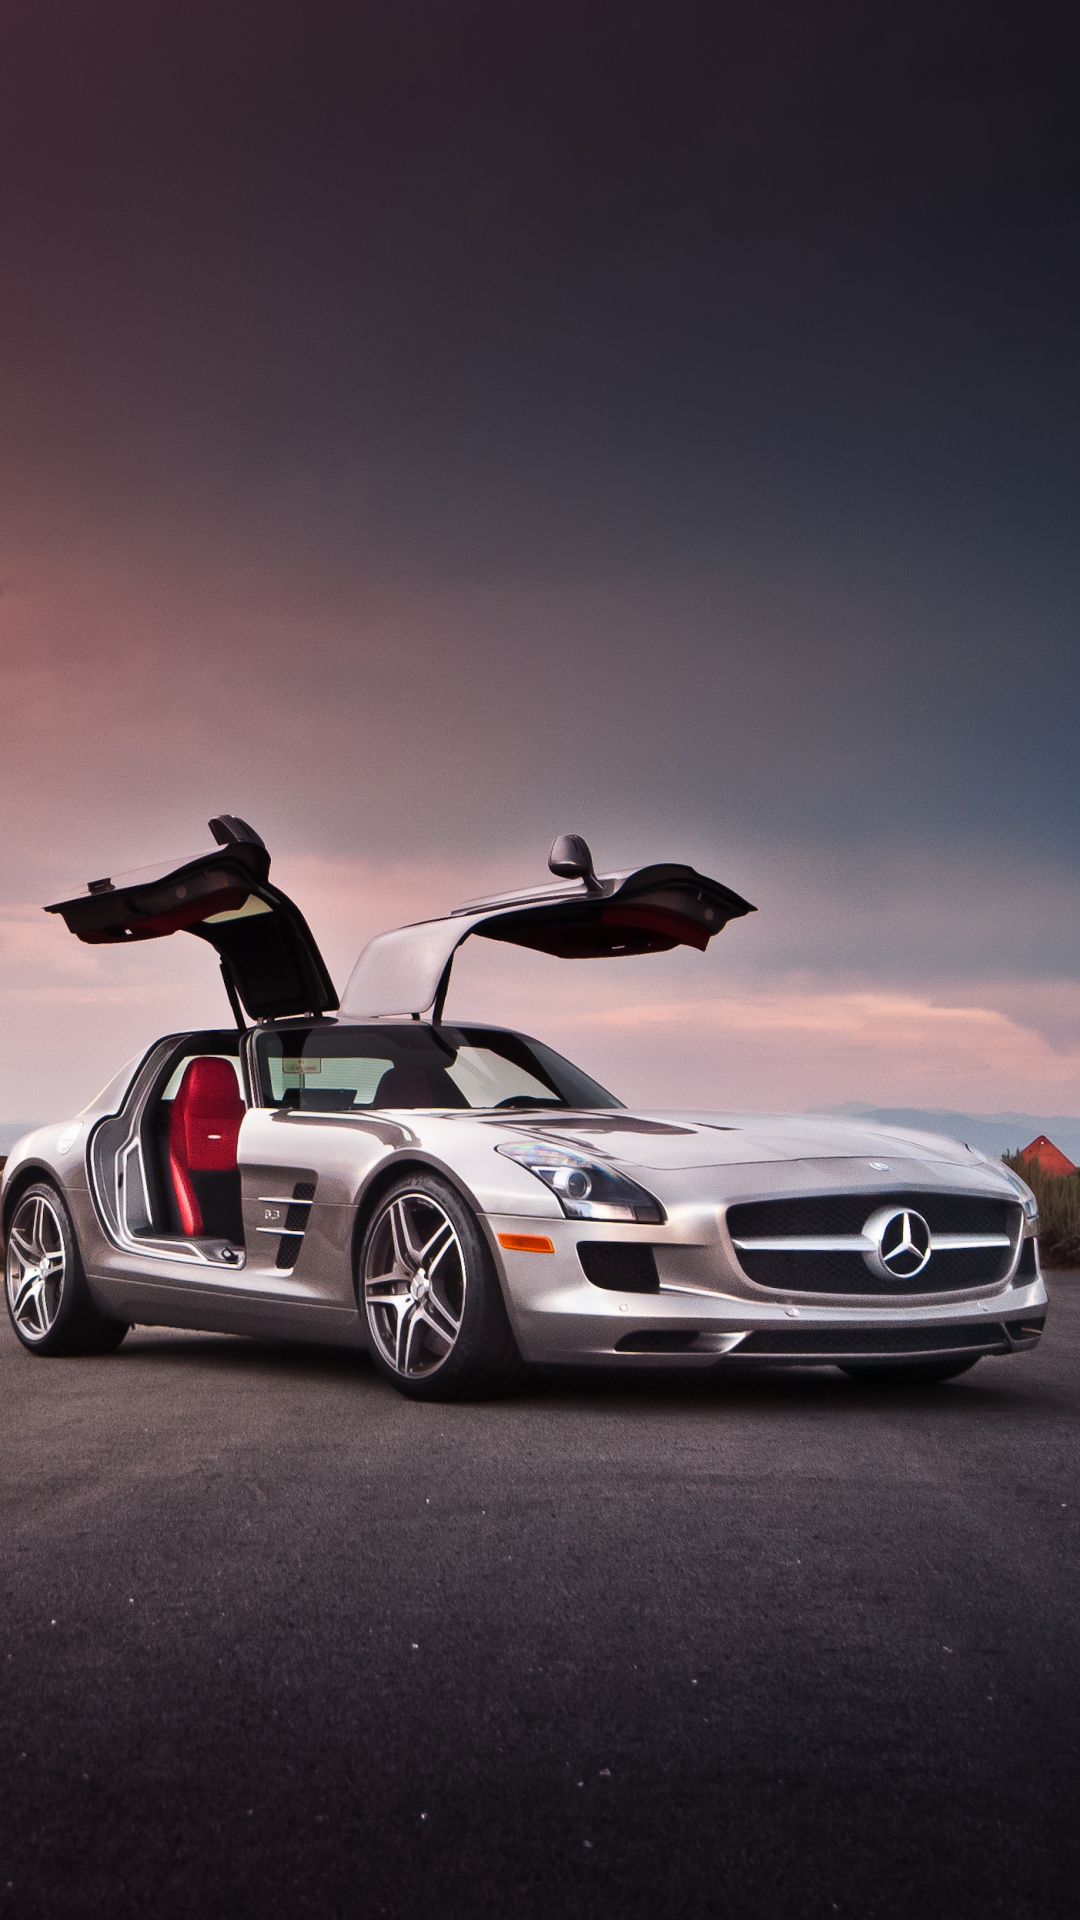 amg logo iphone wallpaper images download 1080x1920